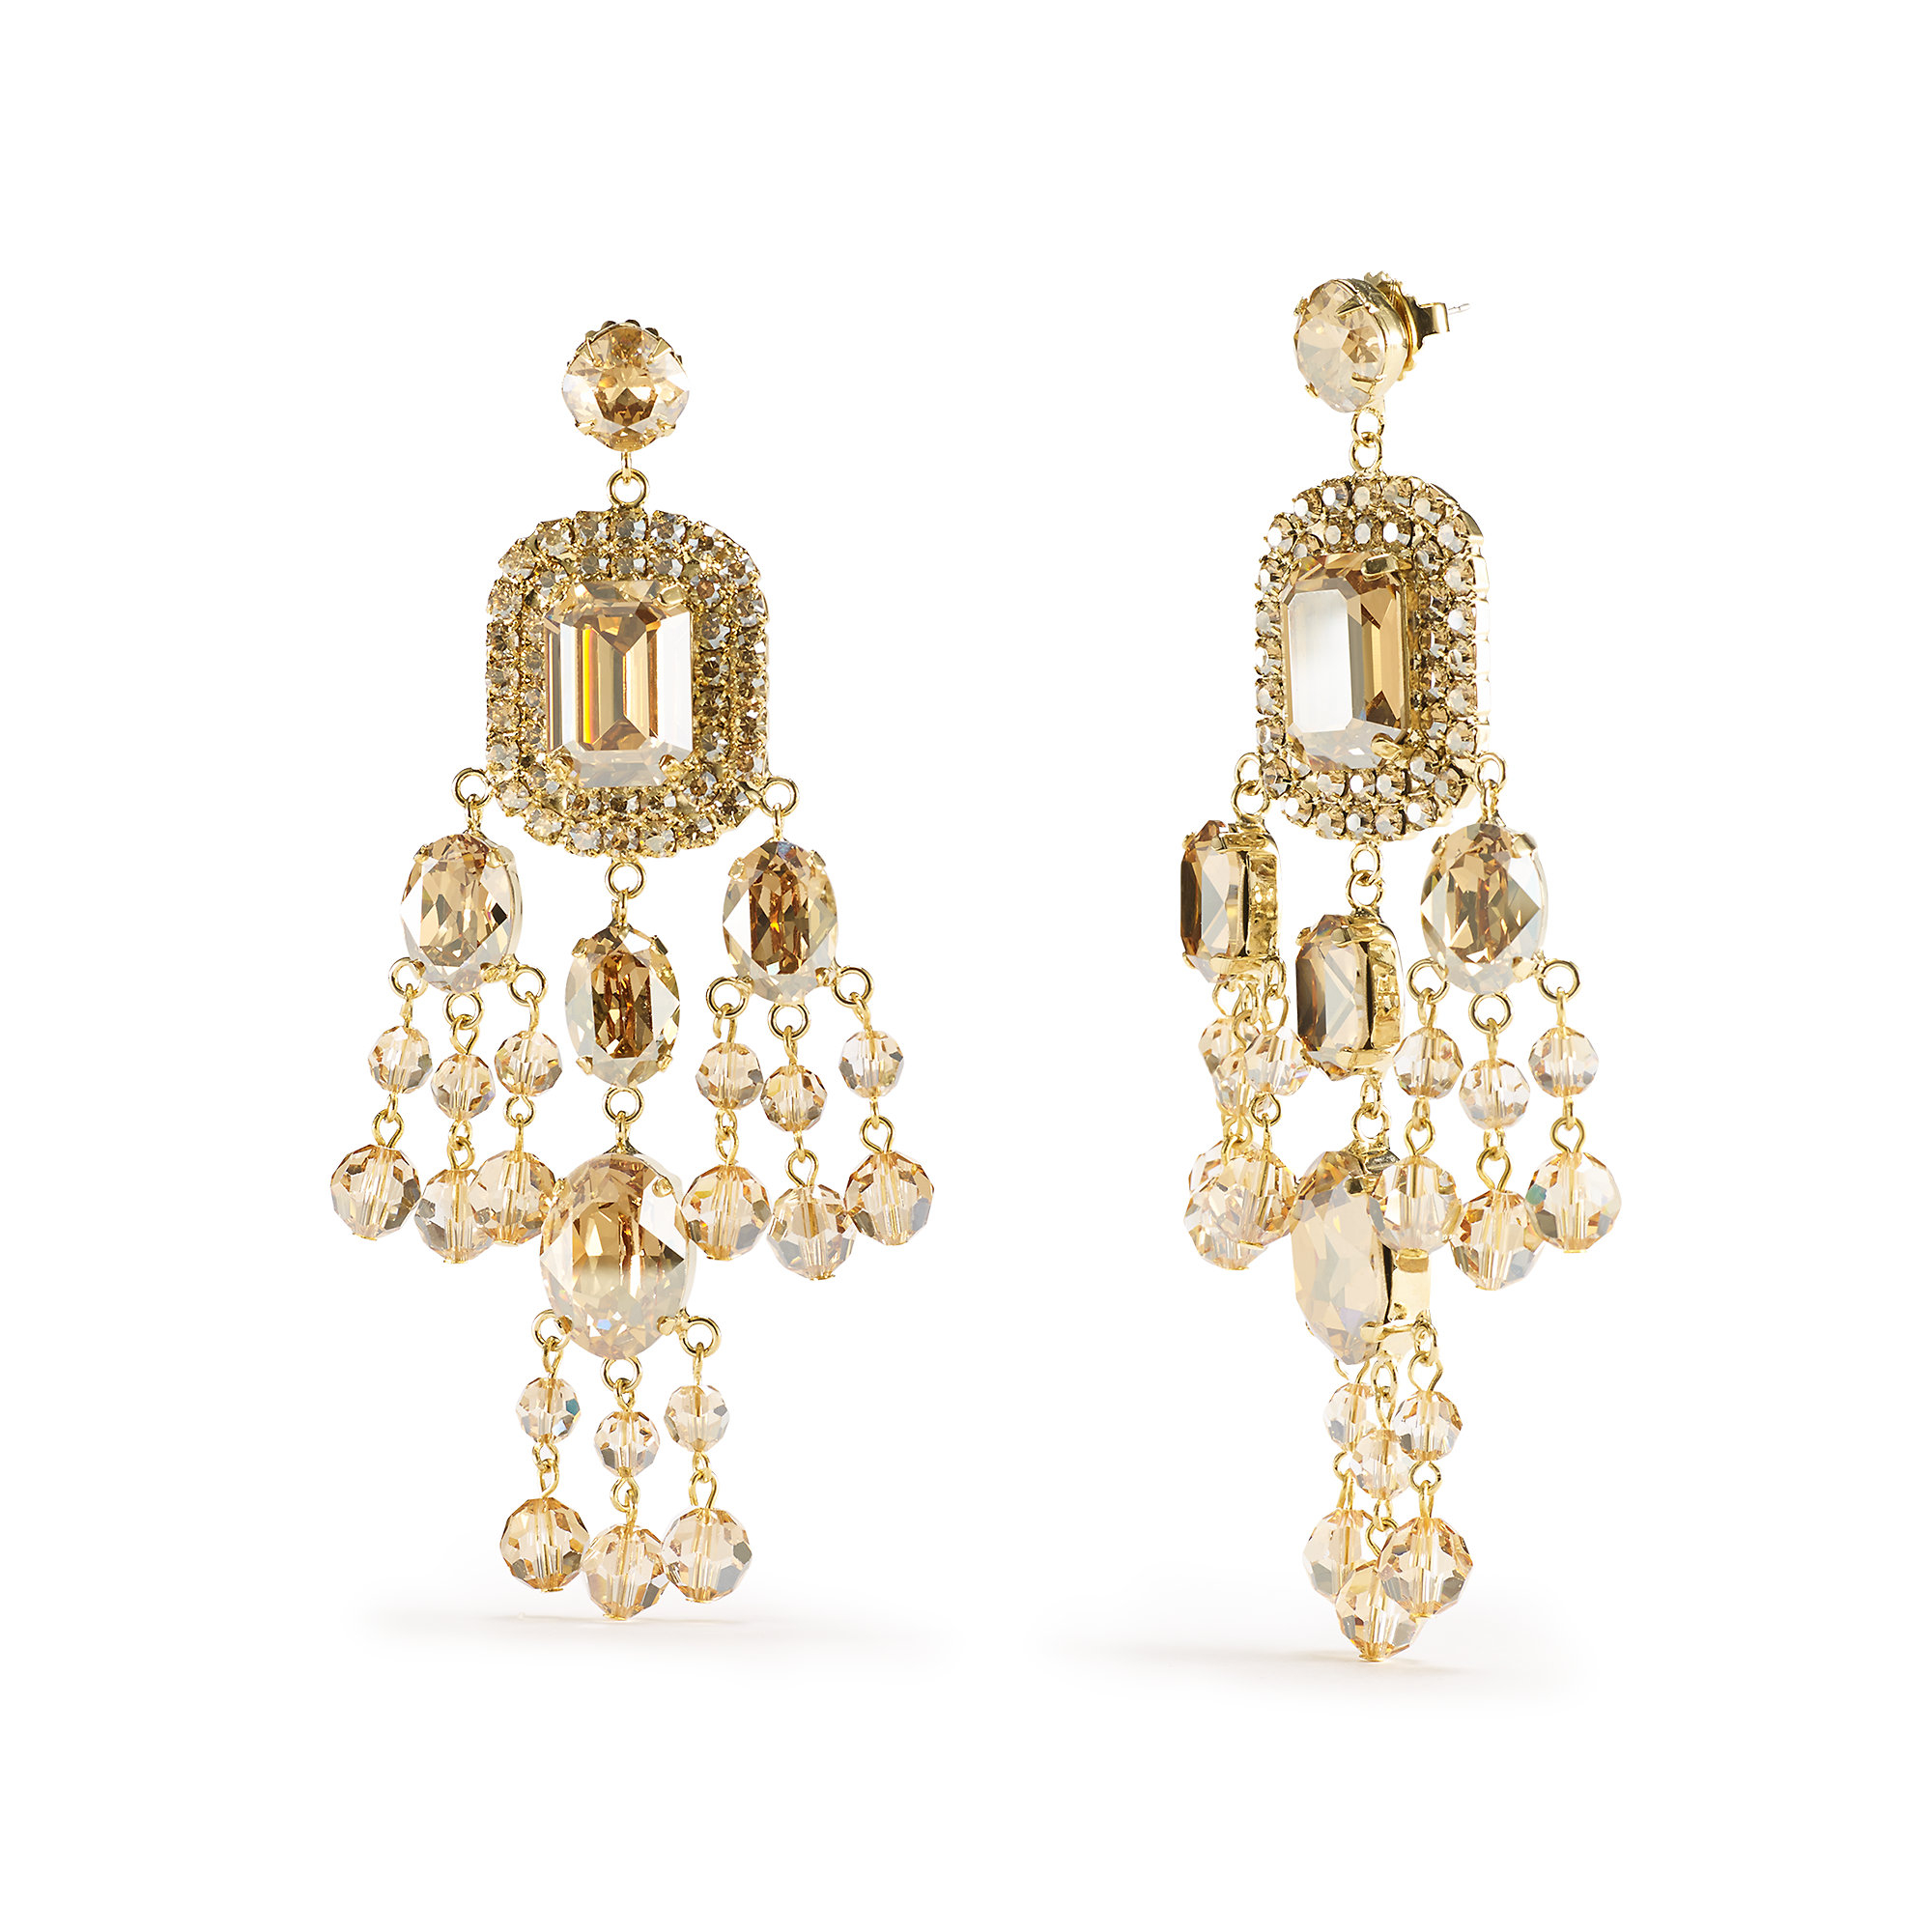 Lyst Ralph lauren Swarovski Chandelier Earrings in Metallic